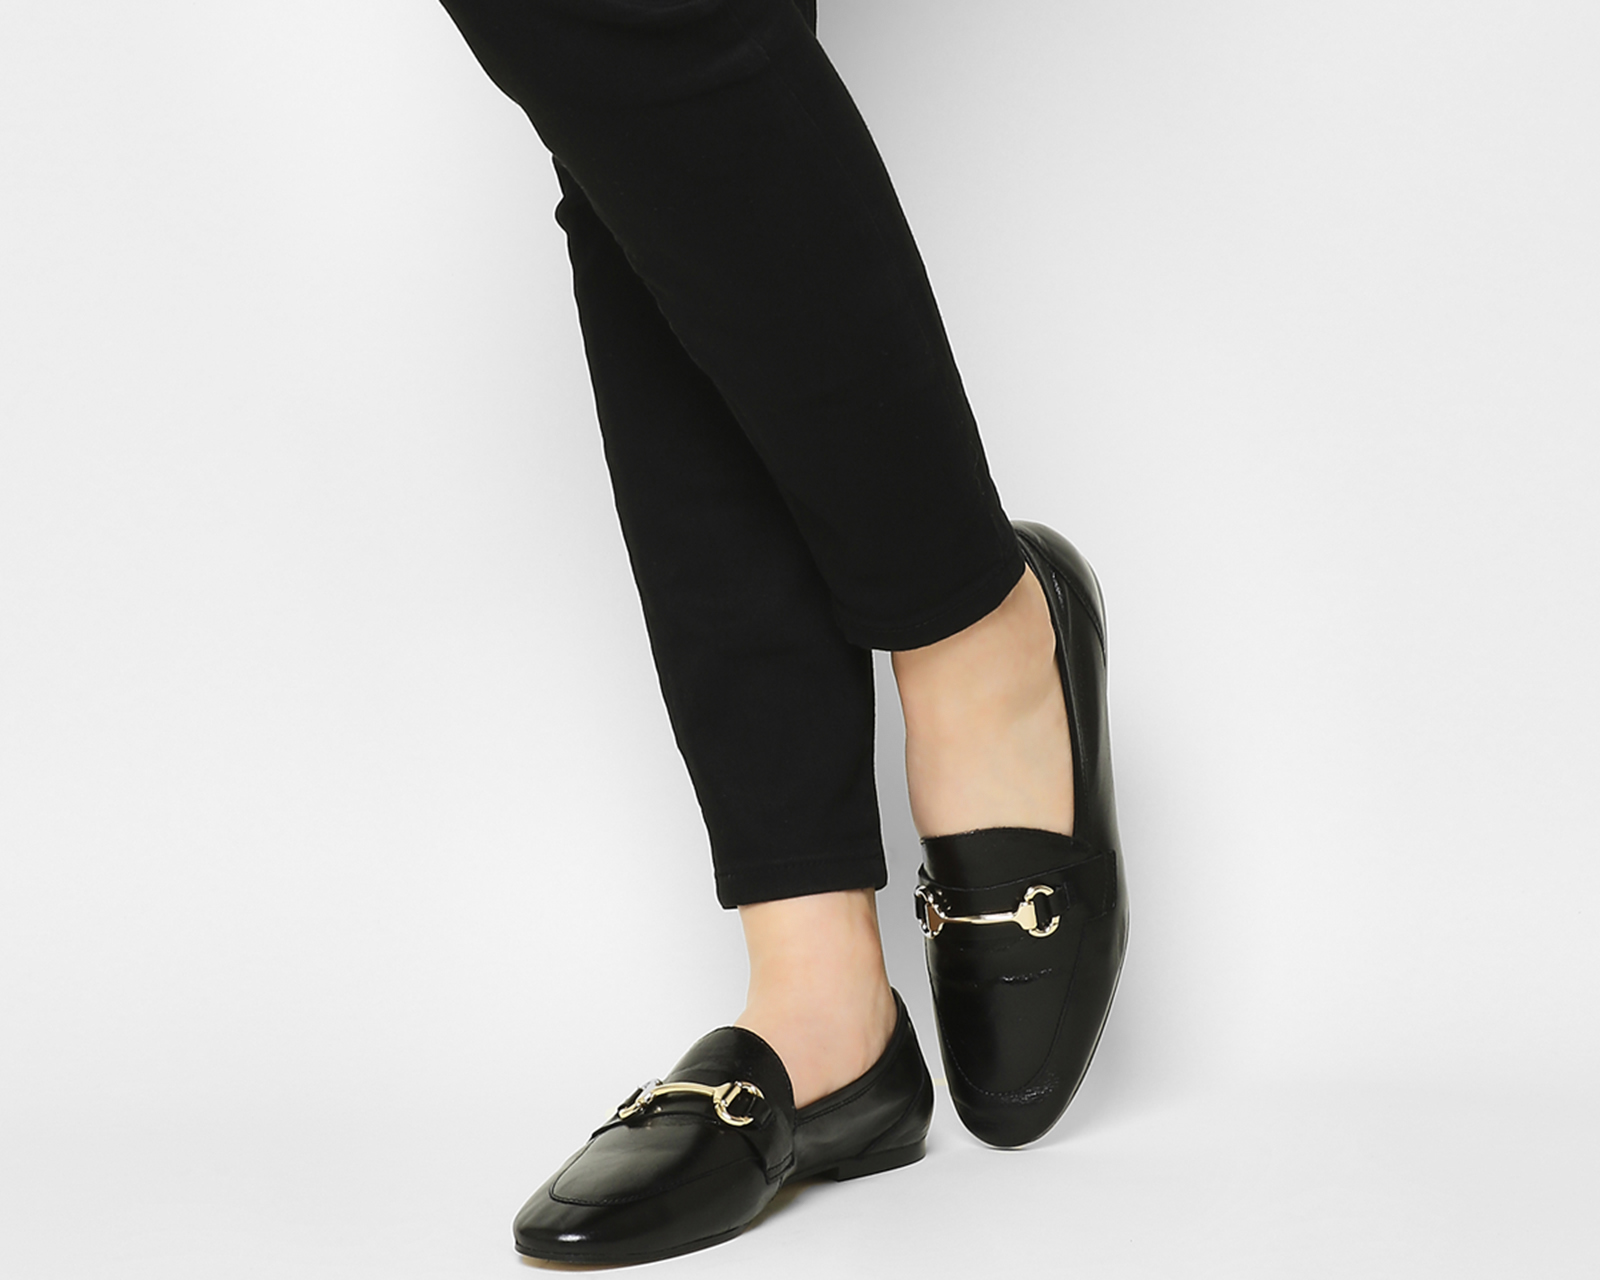 Sentinel Womens Office Destiny Trim Loafers Black Leather 2 Flats